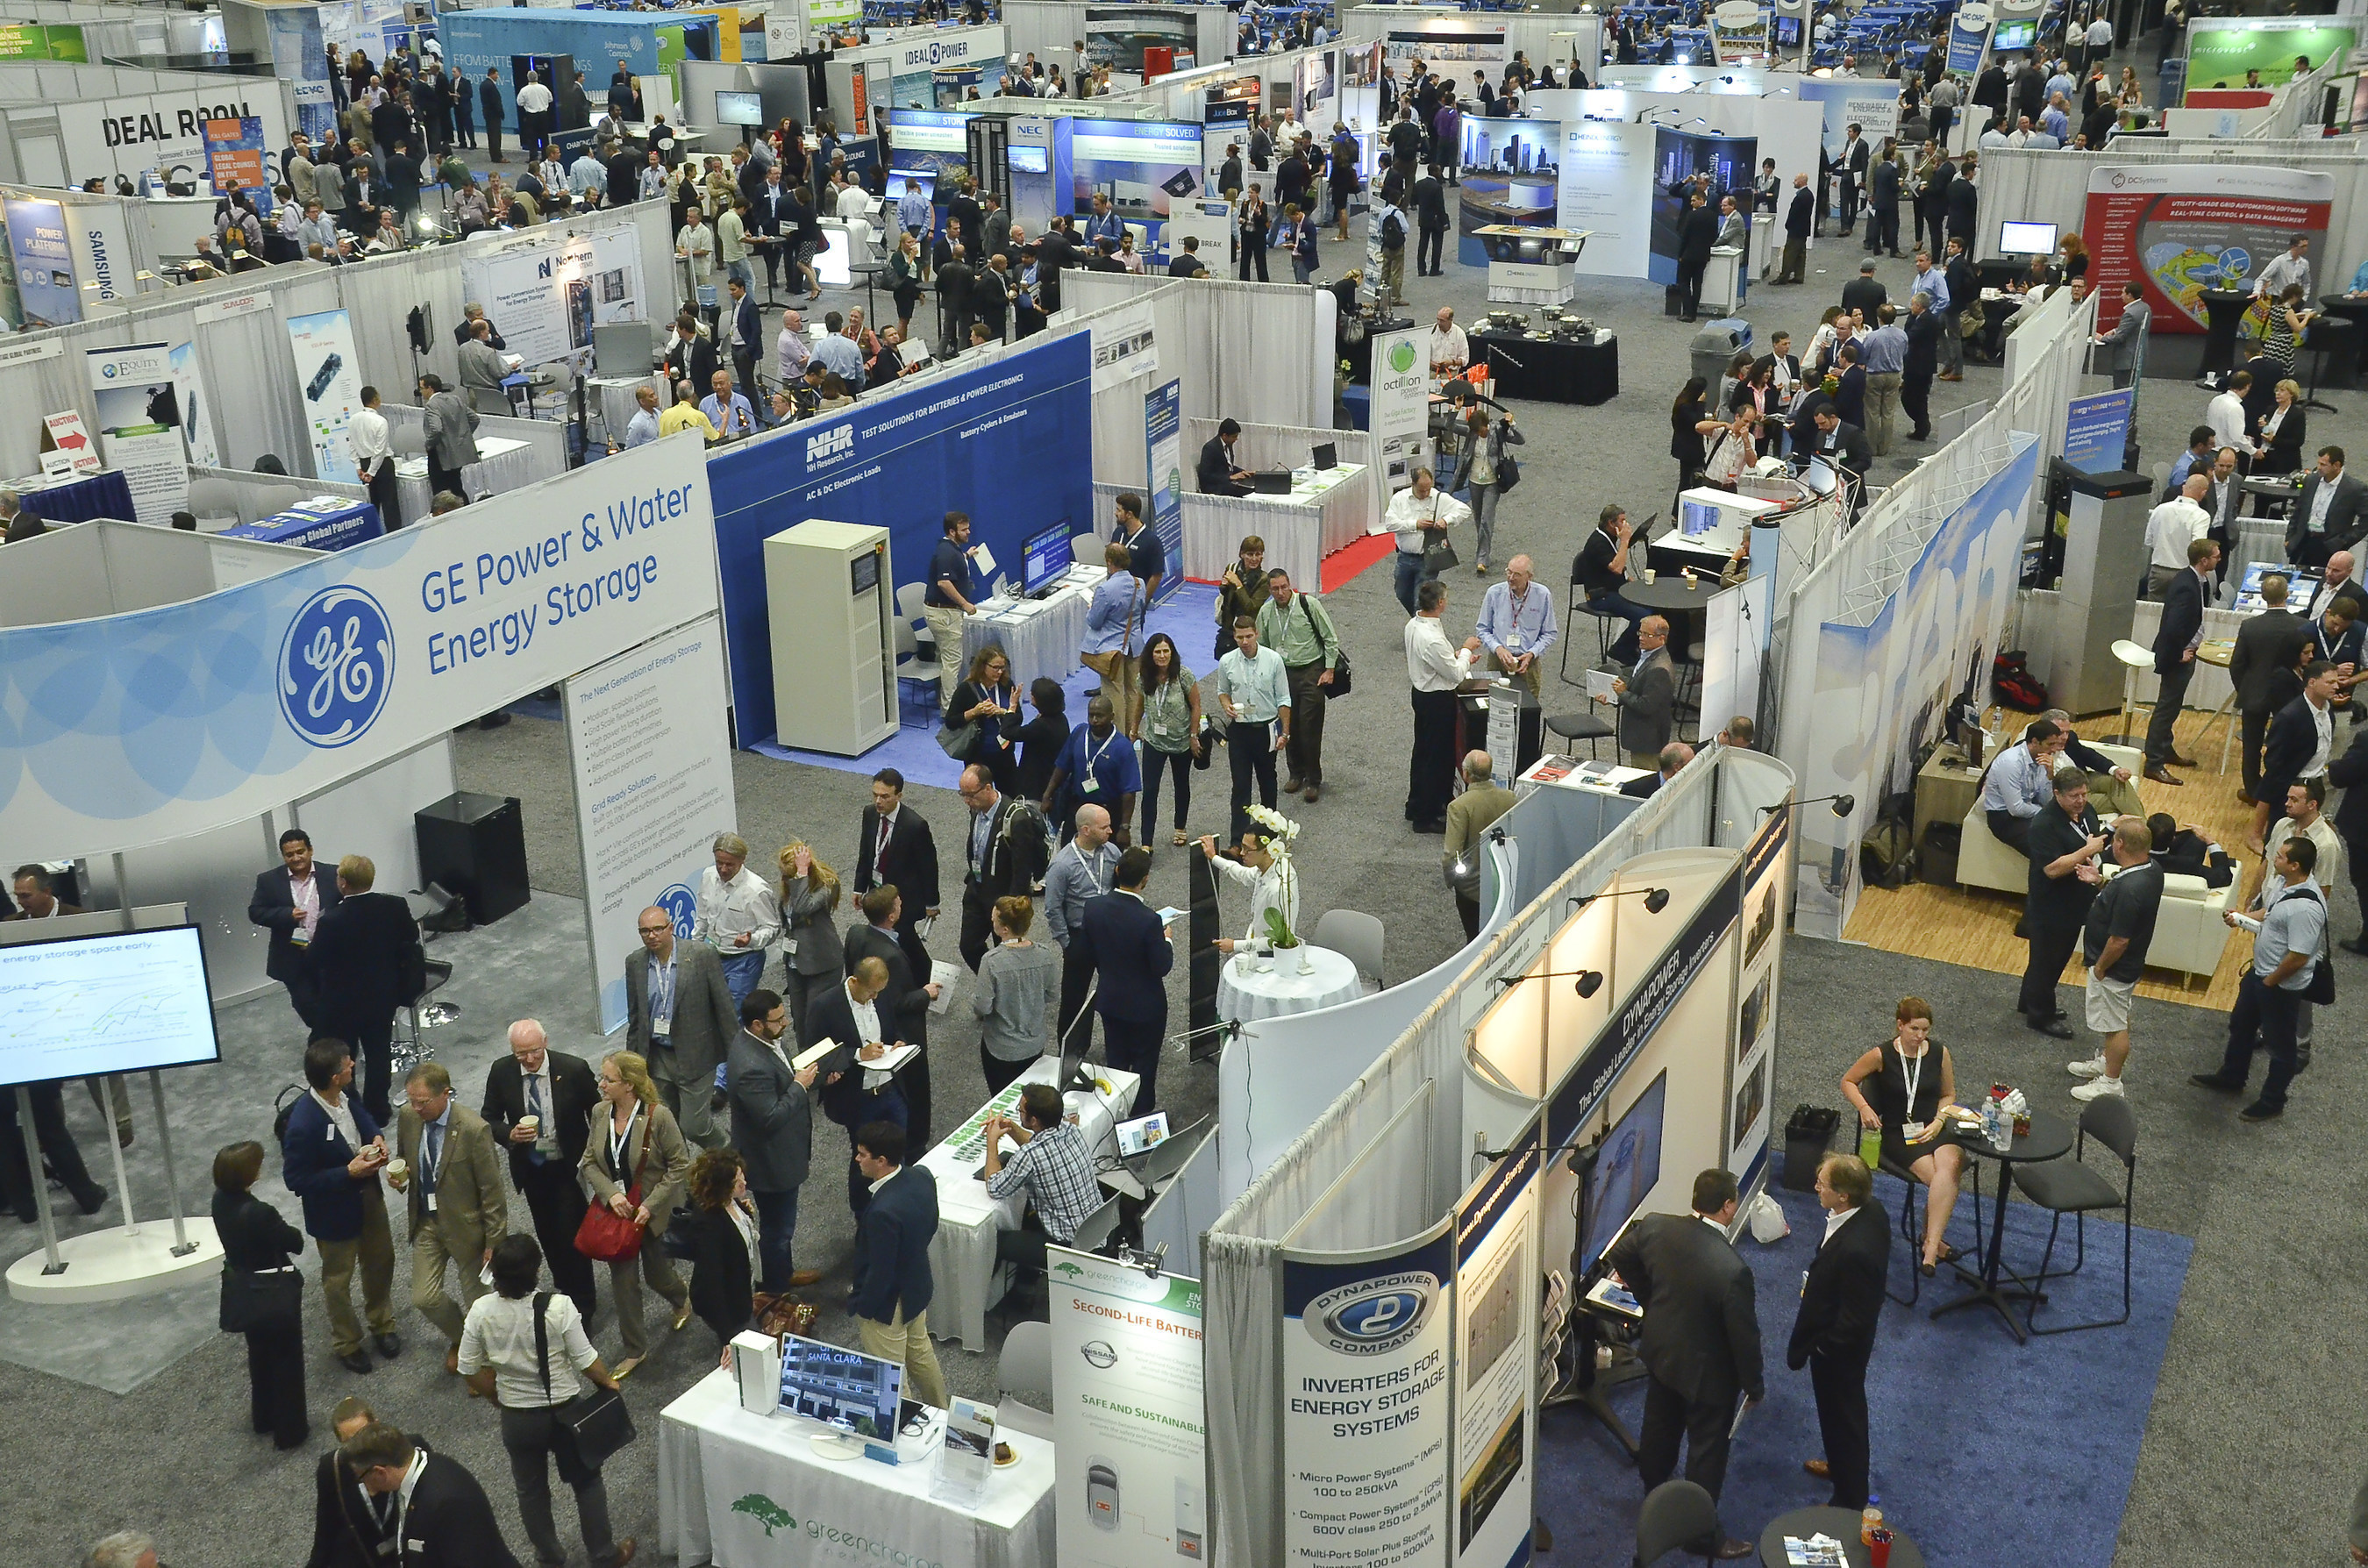 Expo floor at Energy Storage North America in San Diego California on October 14, 2015